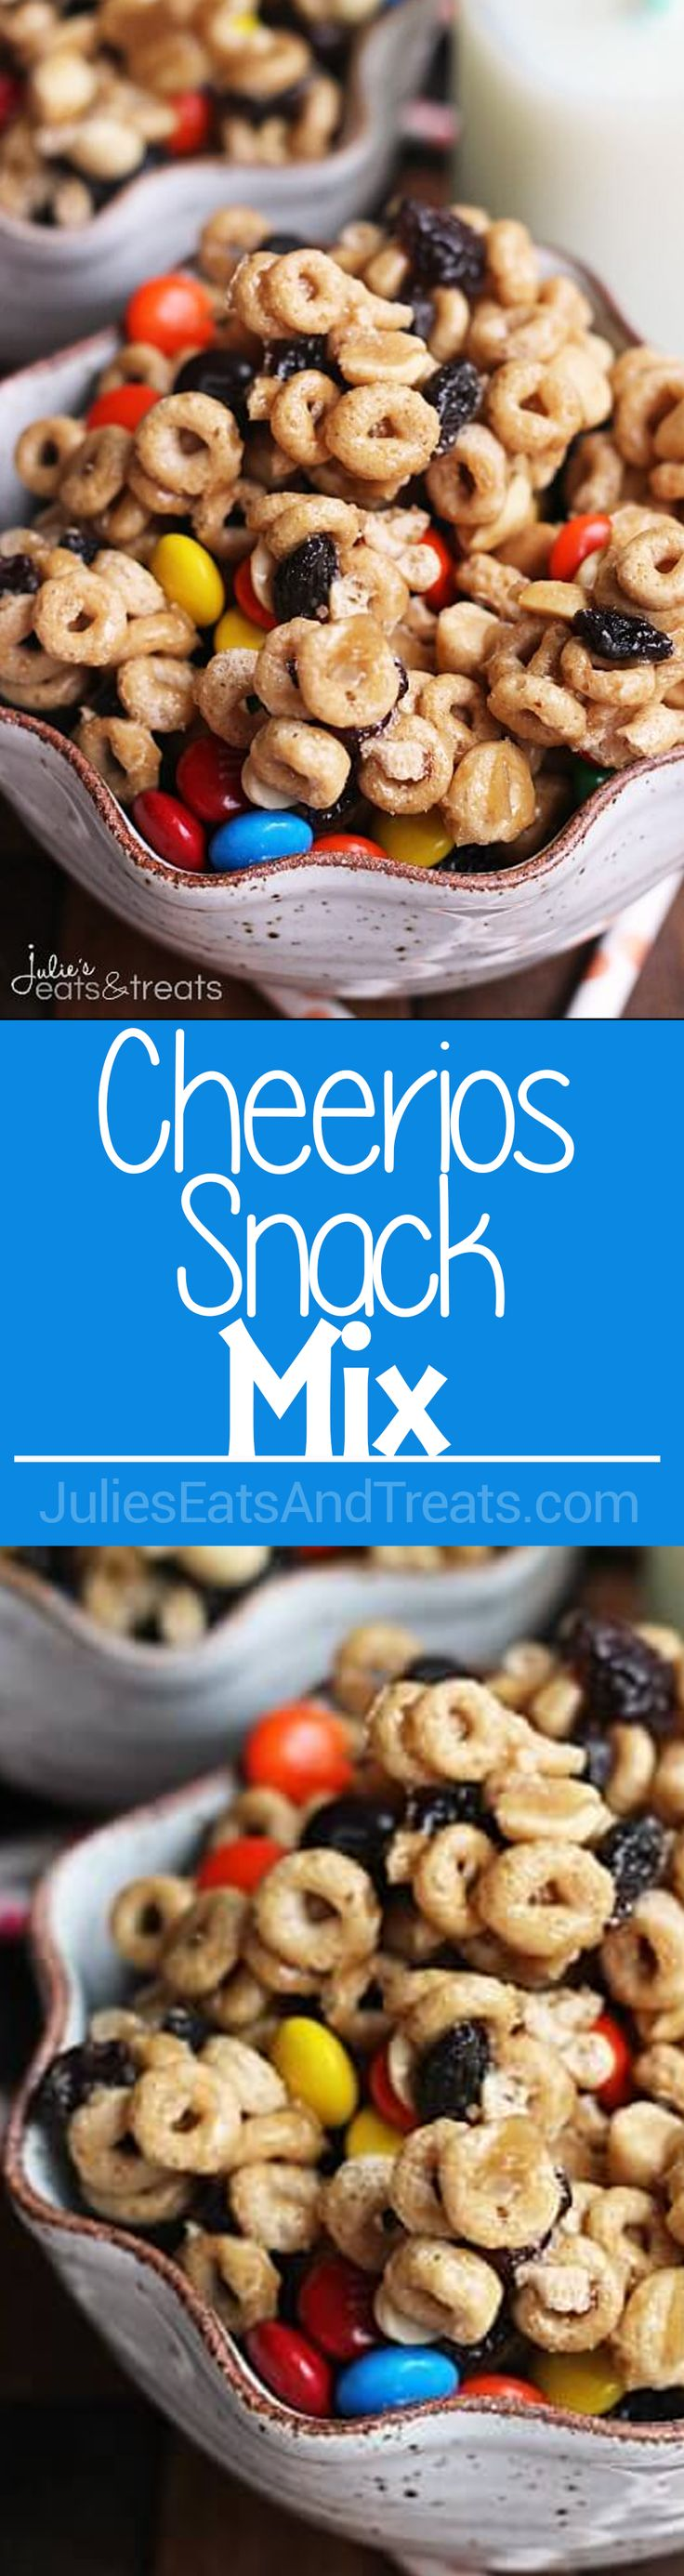 Cheerios Snack Mix ~ Easy, Sweet & Delicious Snack Mix Stuffed with Cheerios, Peanuts, Raisins & M&M's! via @julieseats (Chex Mix M&m)